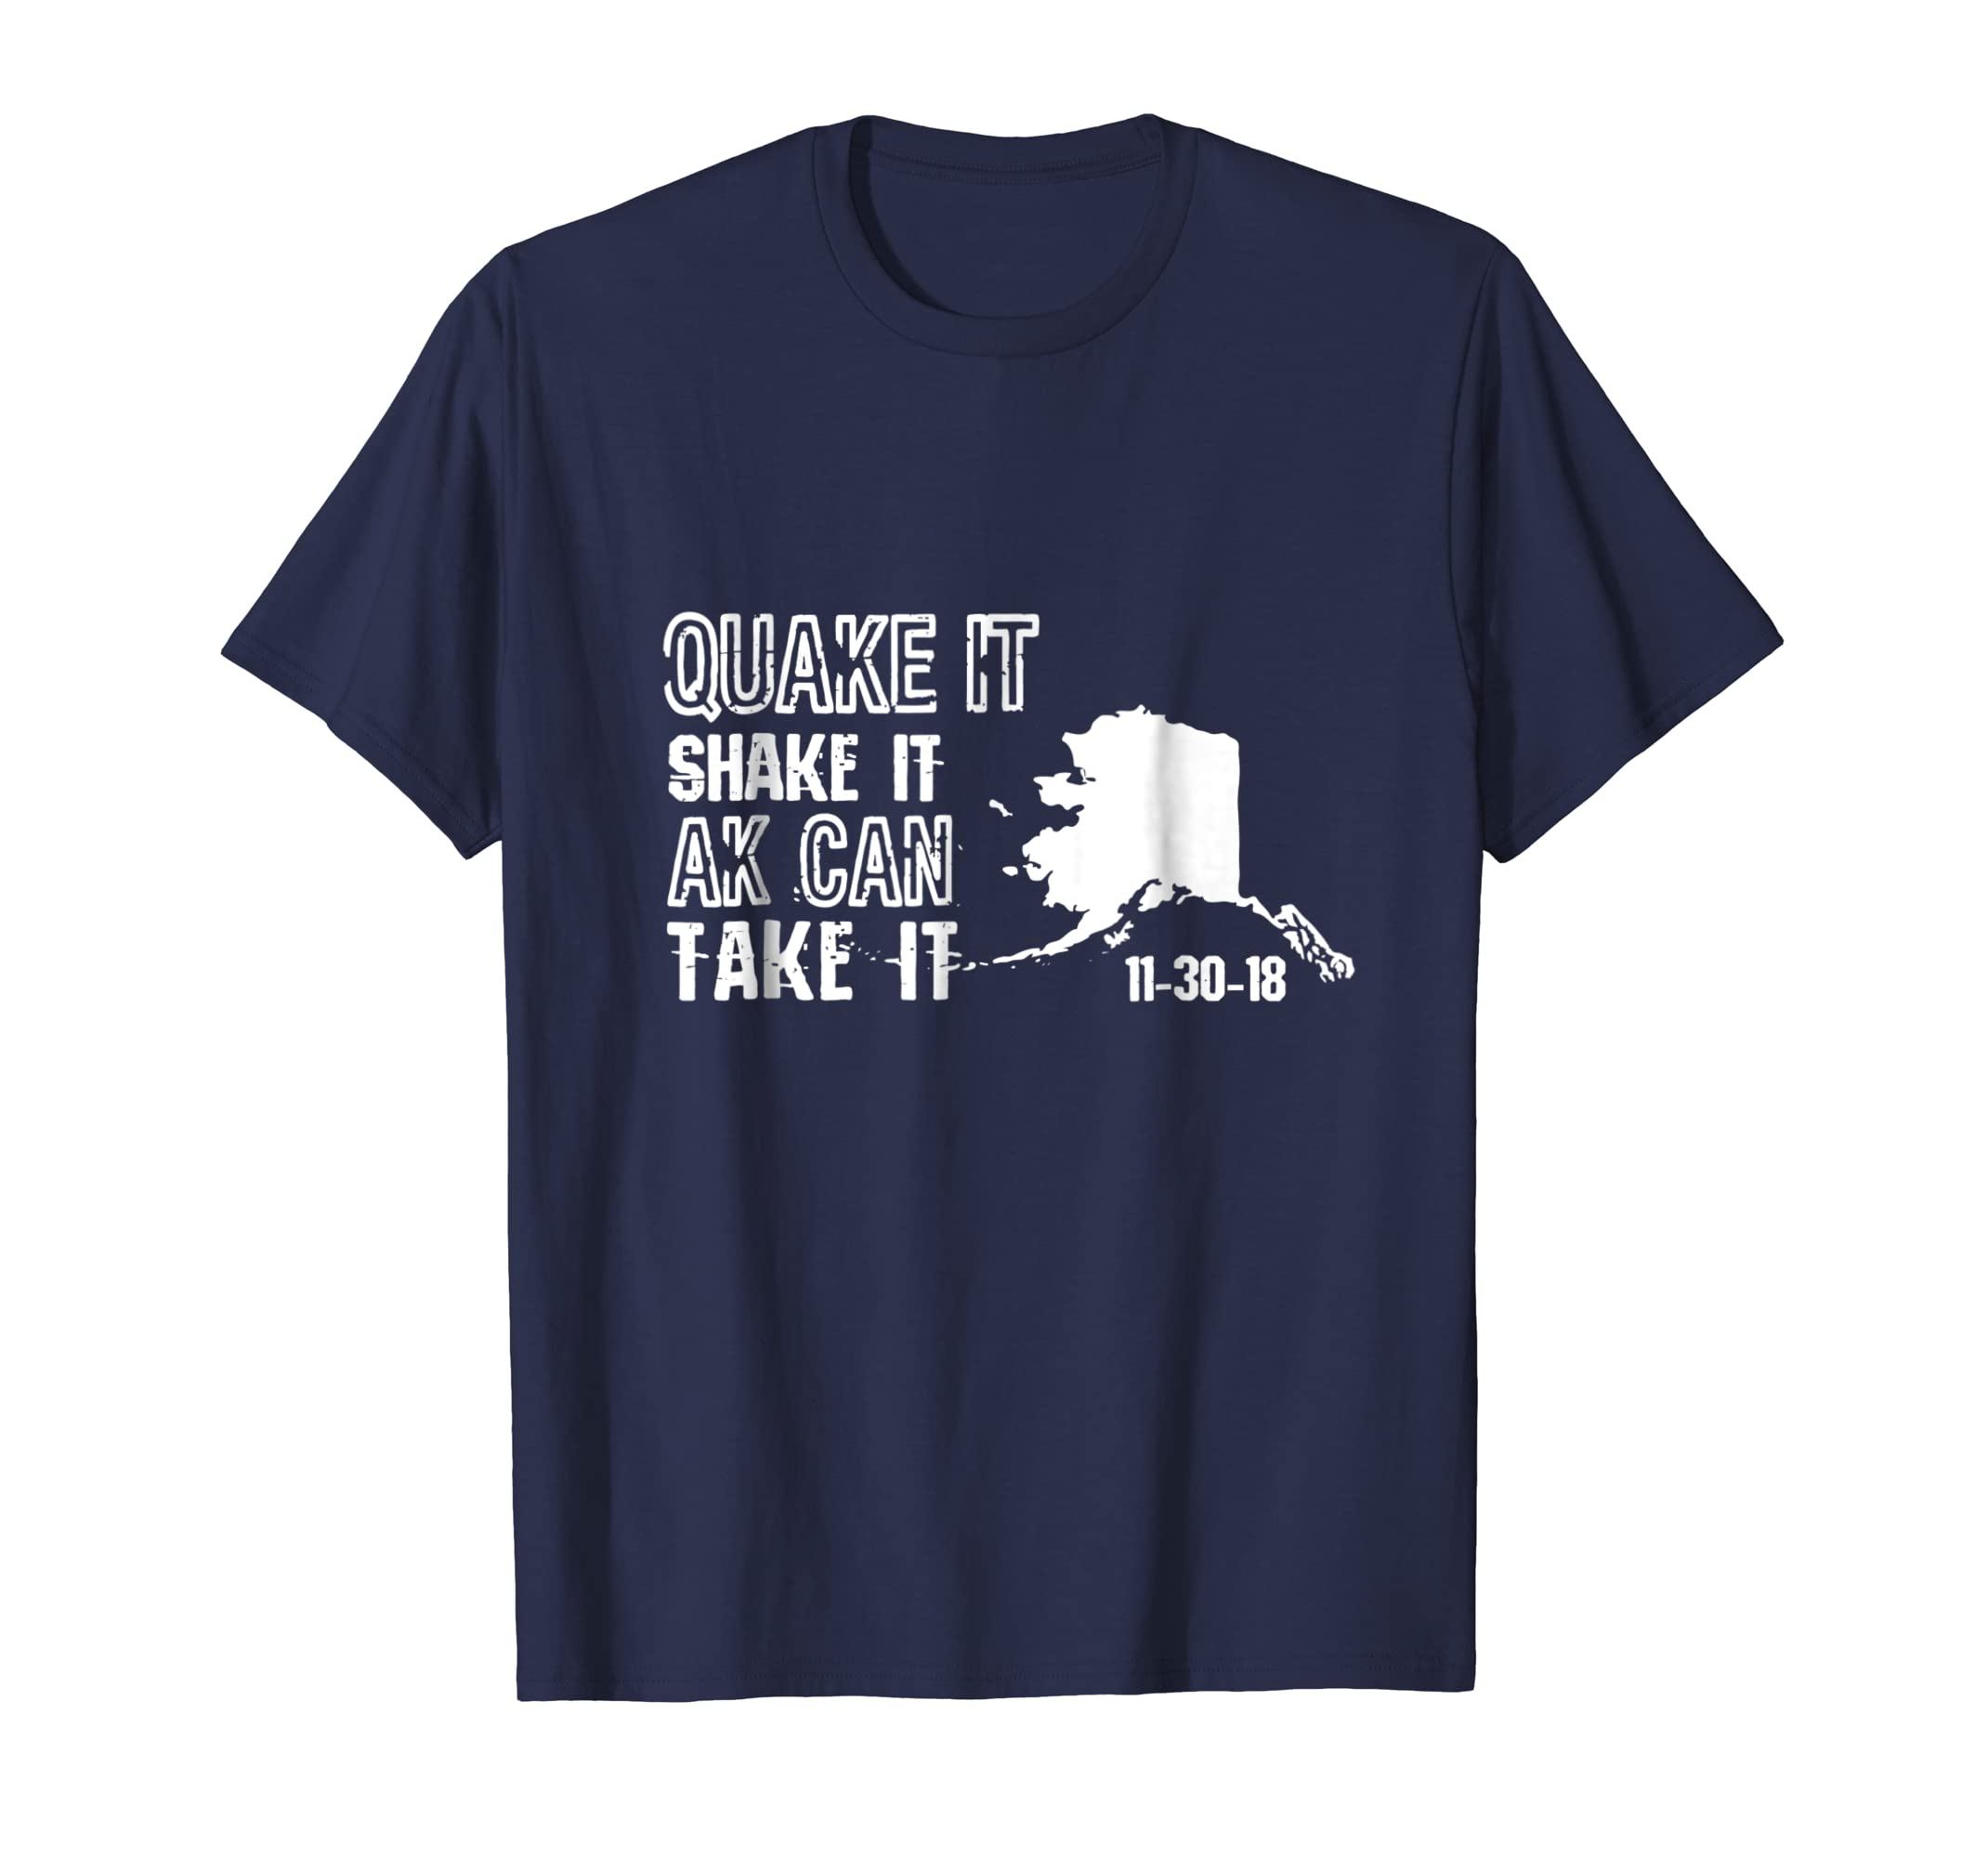 Alaska Earthquake T shirts: Quake It Shake It AK Can Take It-azvn